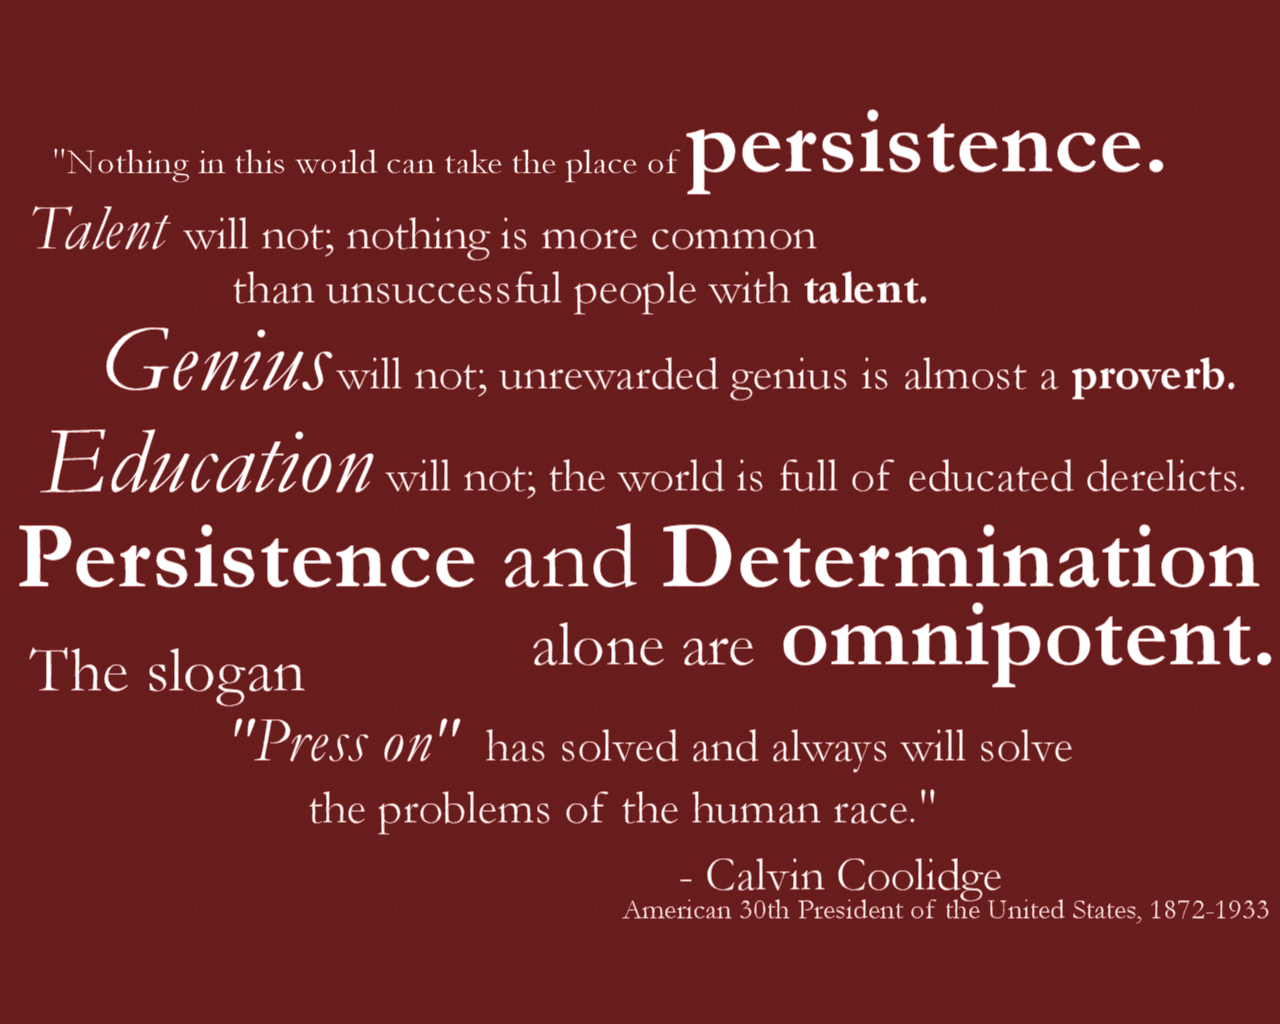 Persistence Quotes By Famous People. QuotesGram